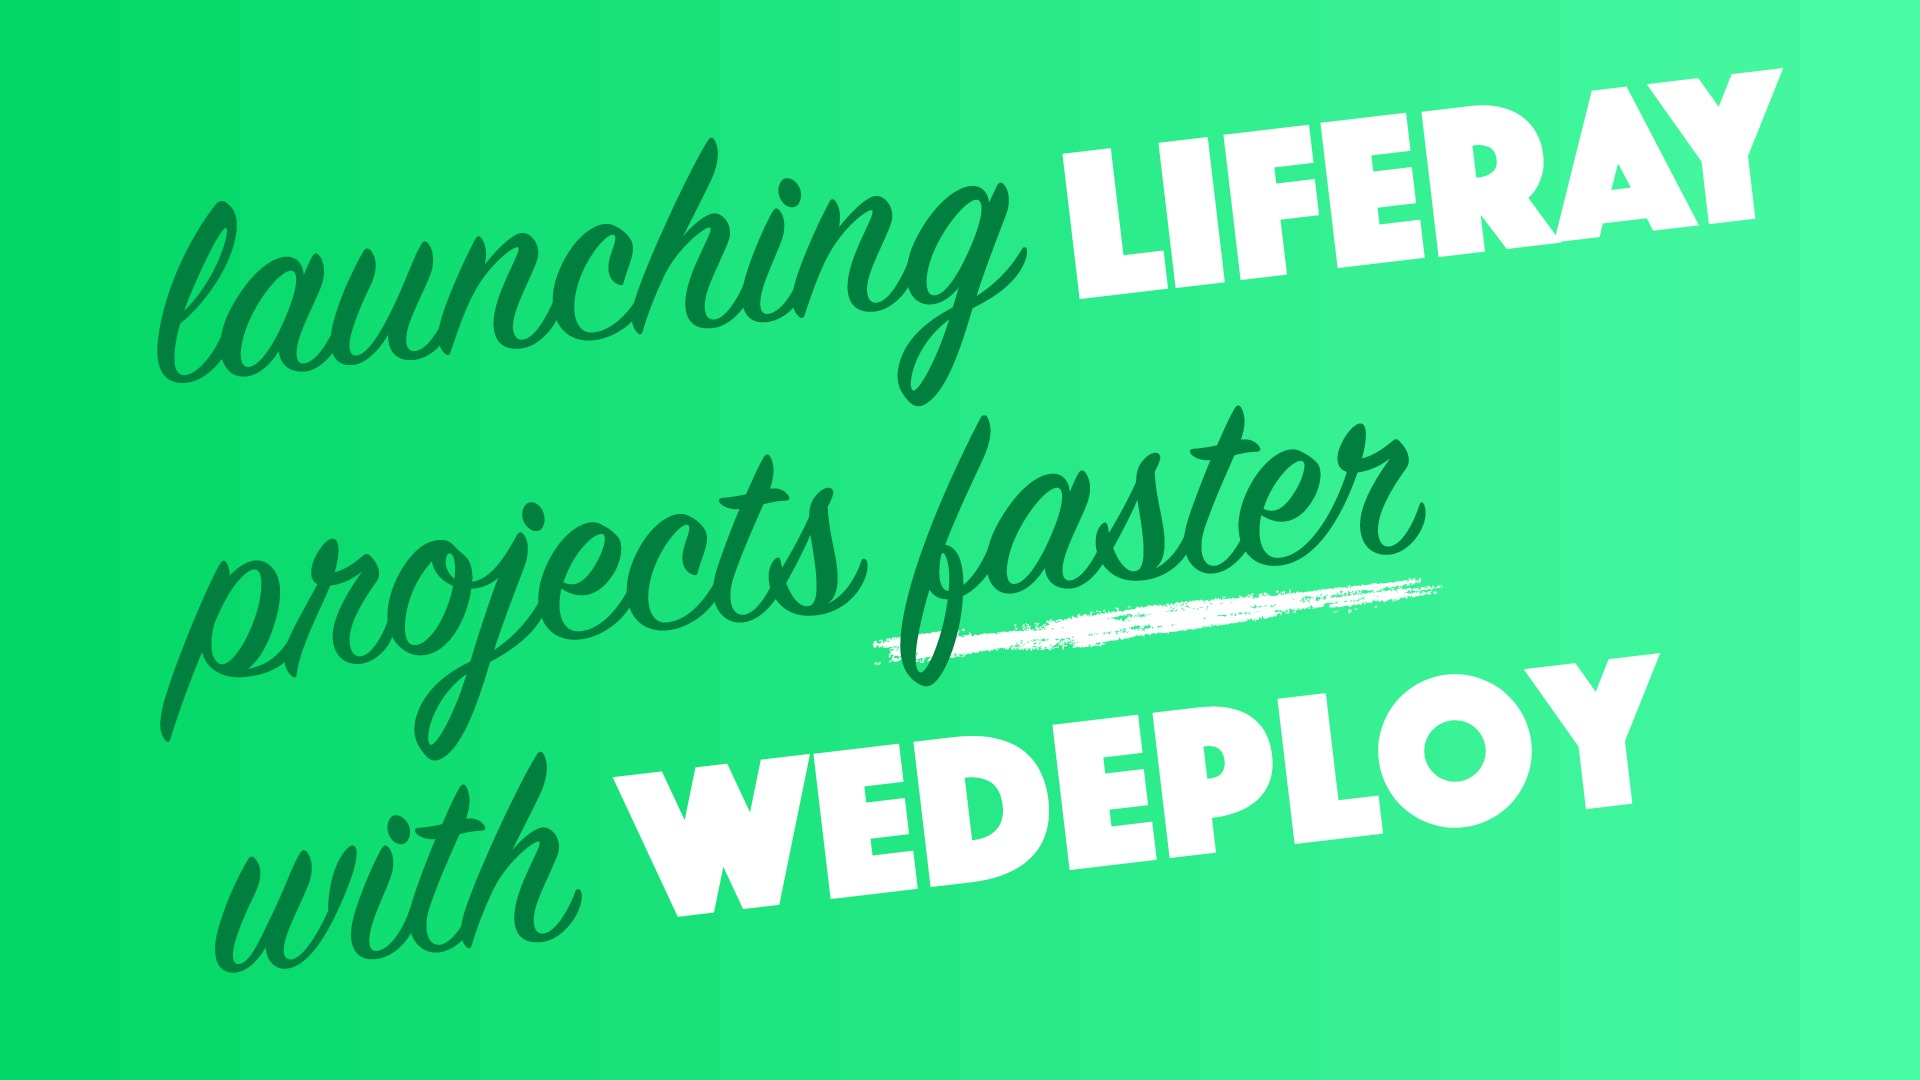 Launching Liferay Projects Faster with WeDeploy